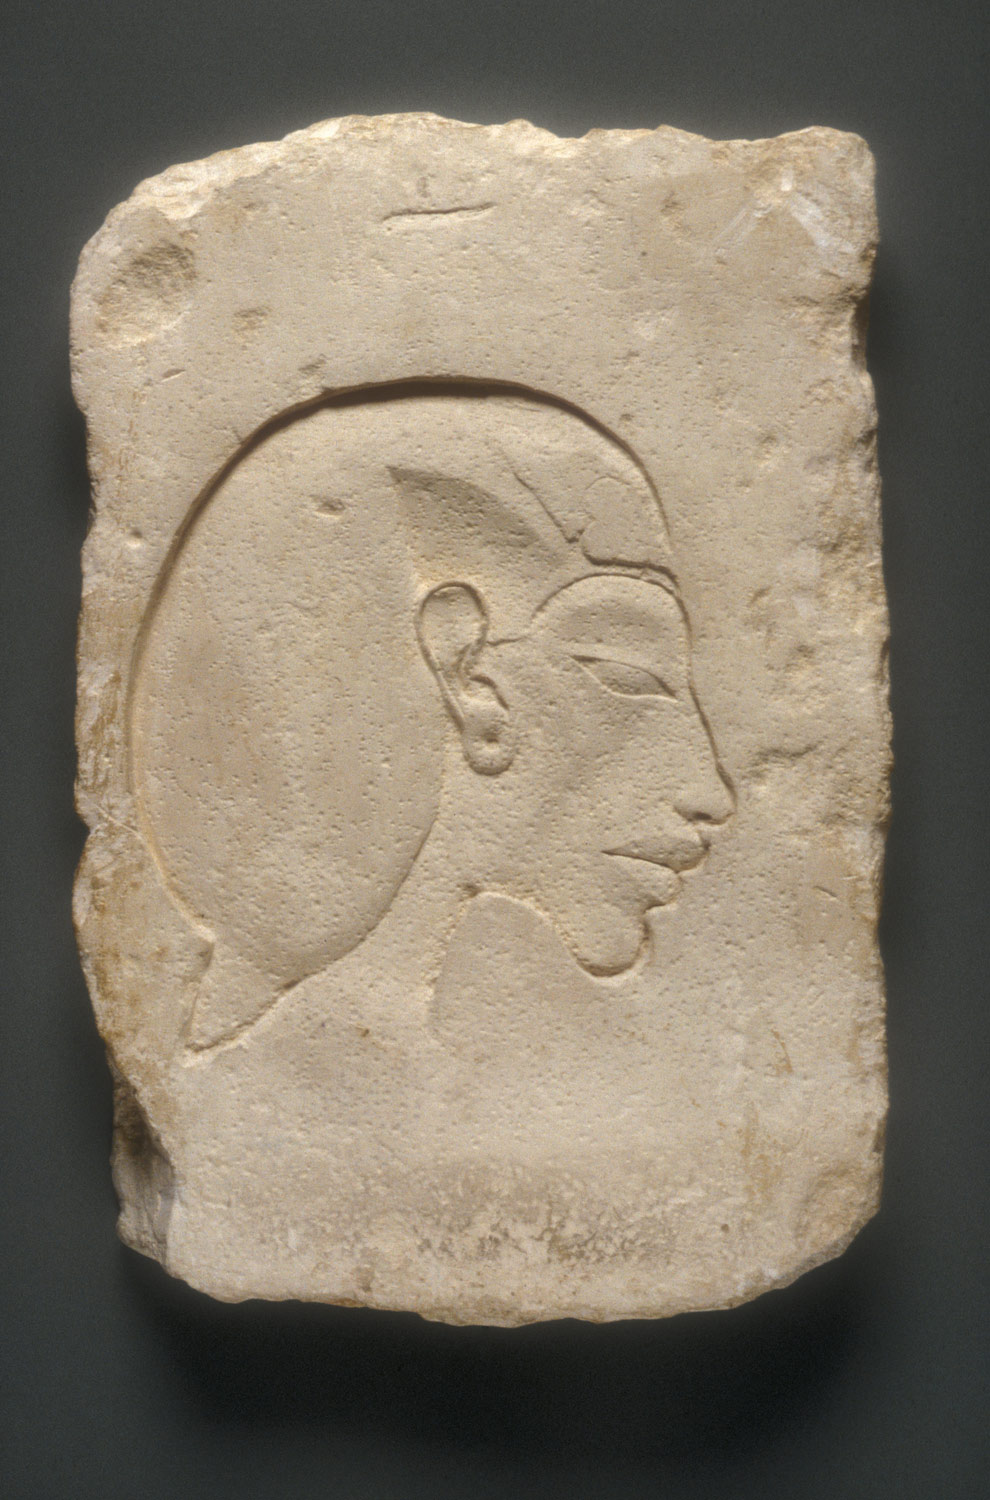 Trial Piece with Relief of Head of Akhenaten